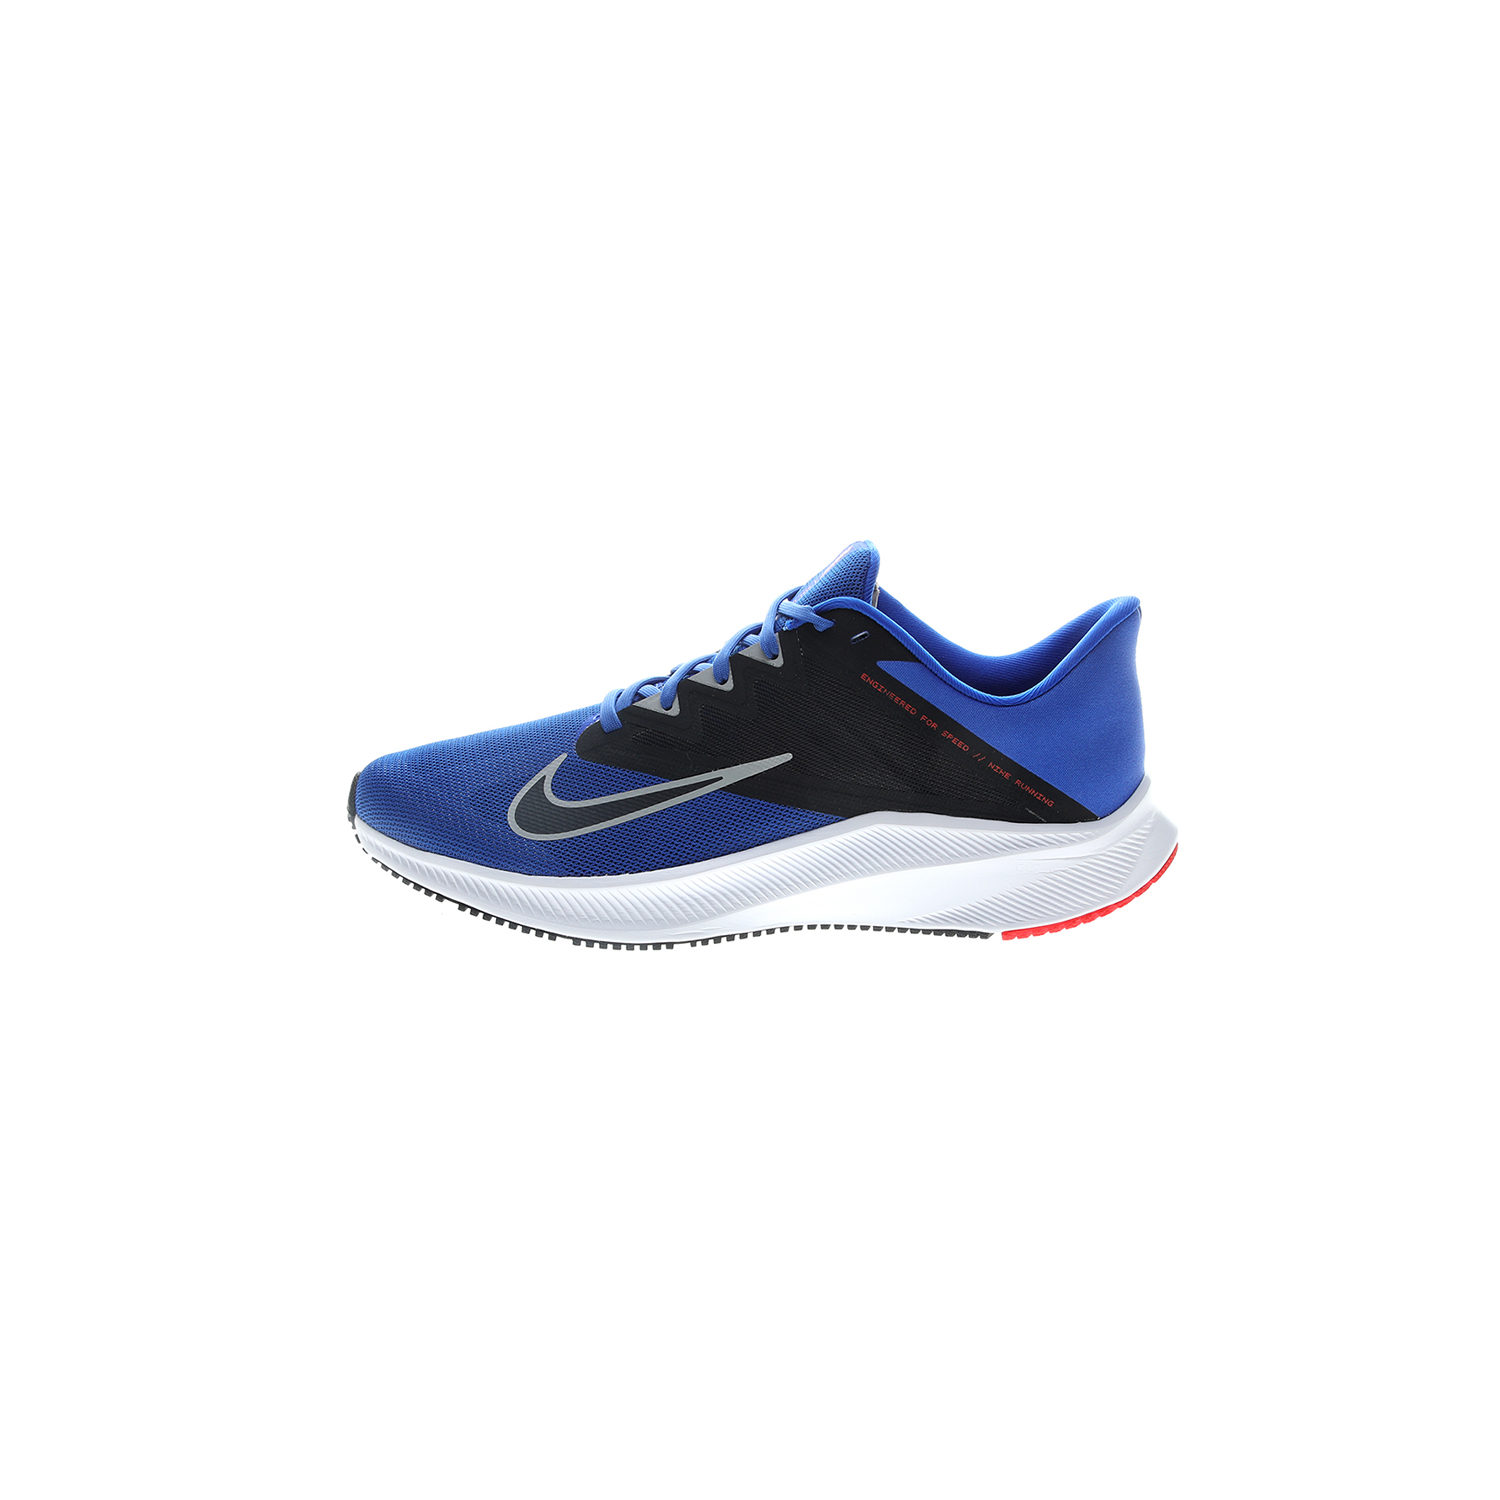 NIKE – Ανδρικά παπούτσια running NIKE QUEST 3 μπλε